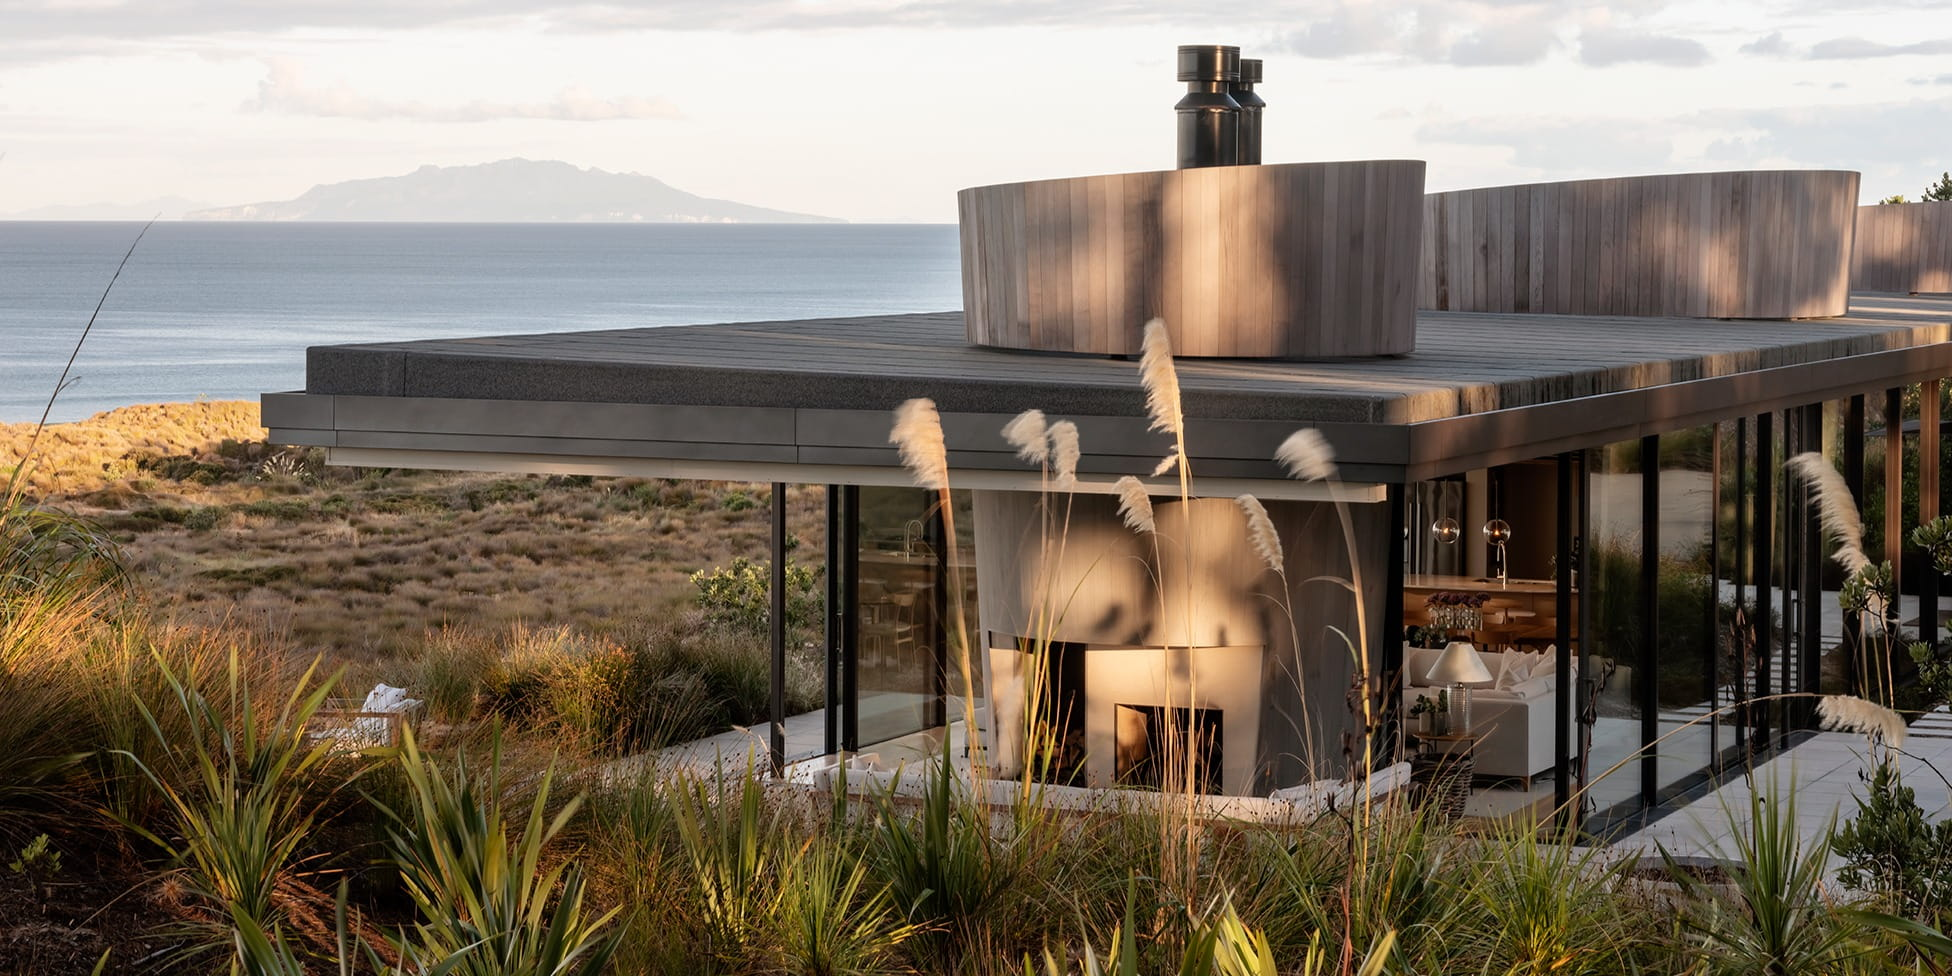 Cheshire Architects inserts mid-century-inspired glass house into the landscape of New Zealand